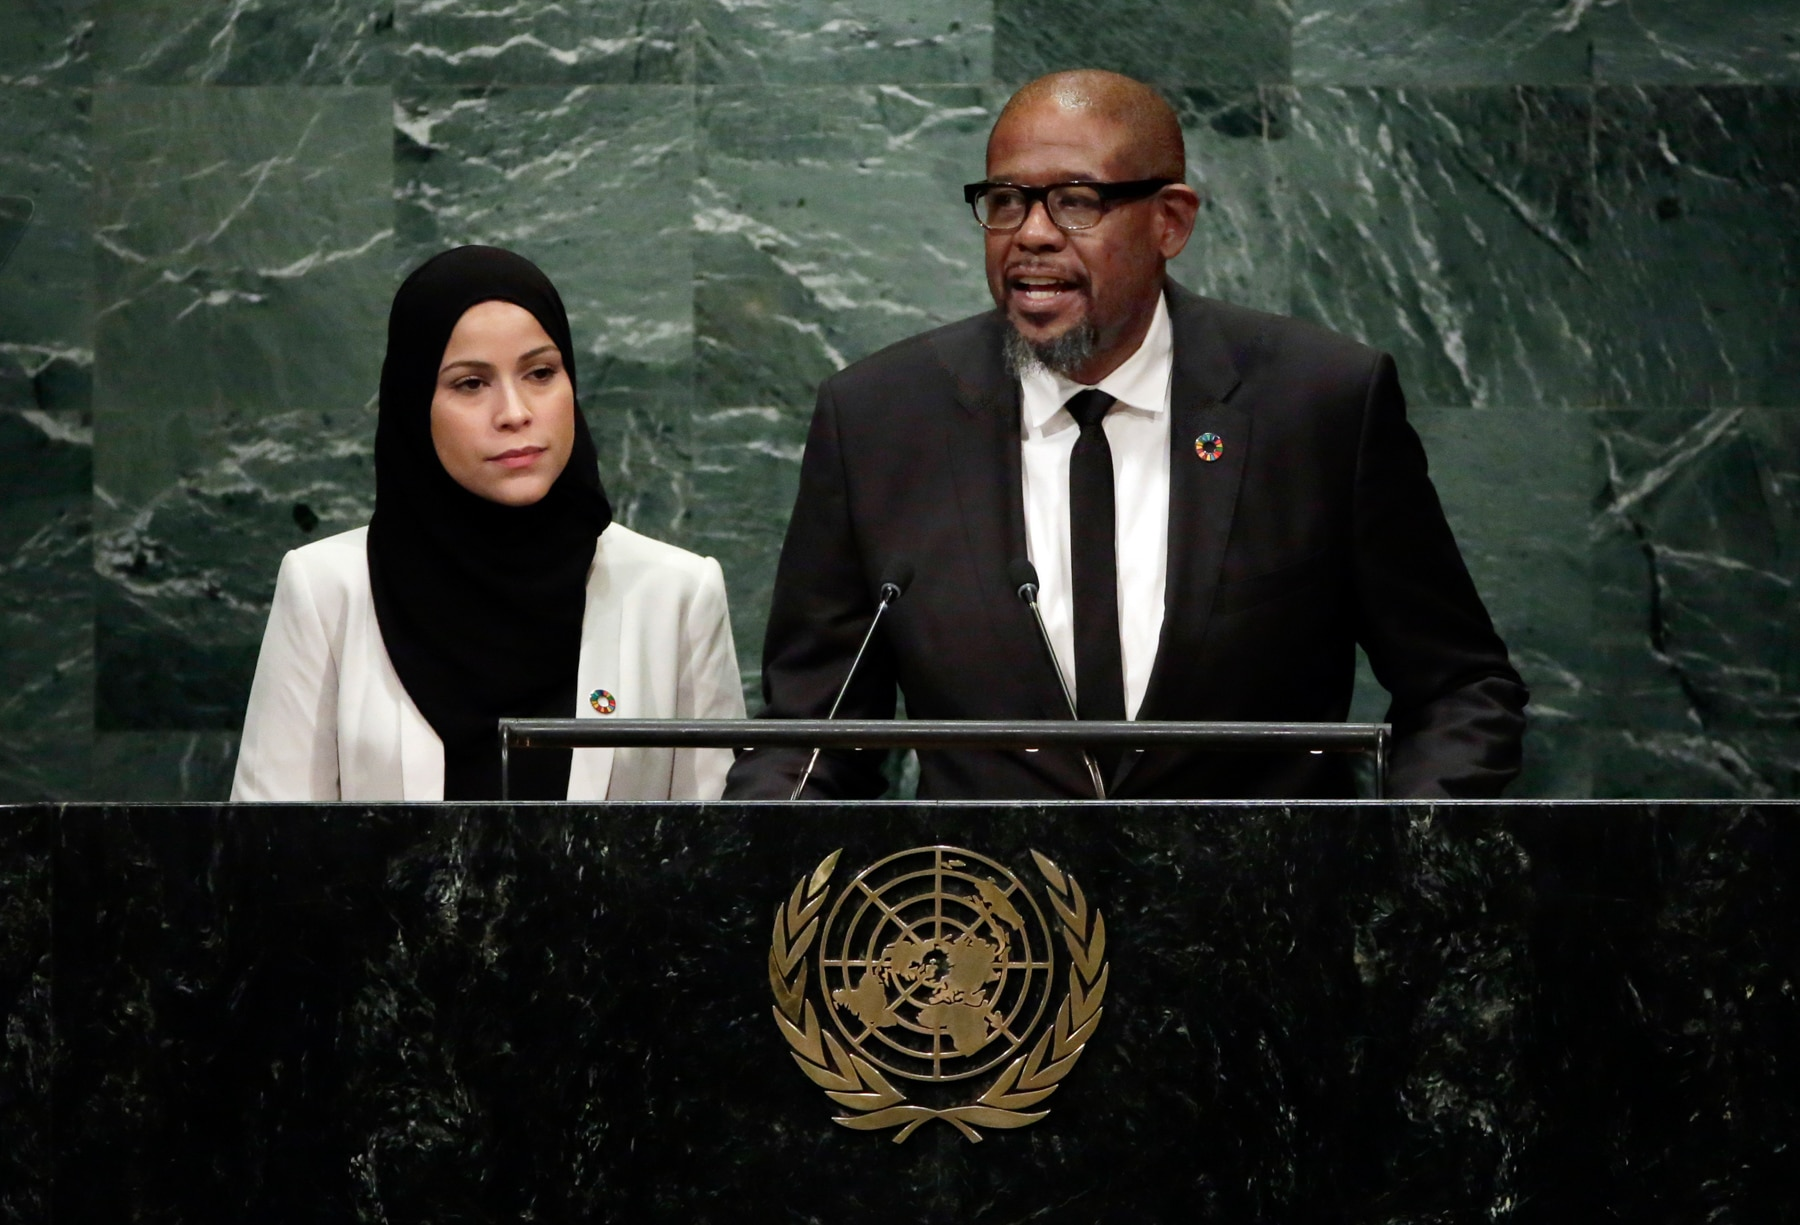 Alaa Murabit standing next to Forest Whitaker at lectern (© AP Images)